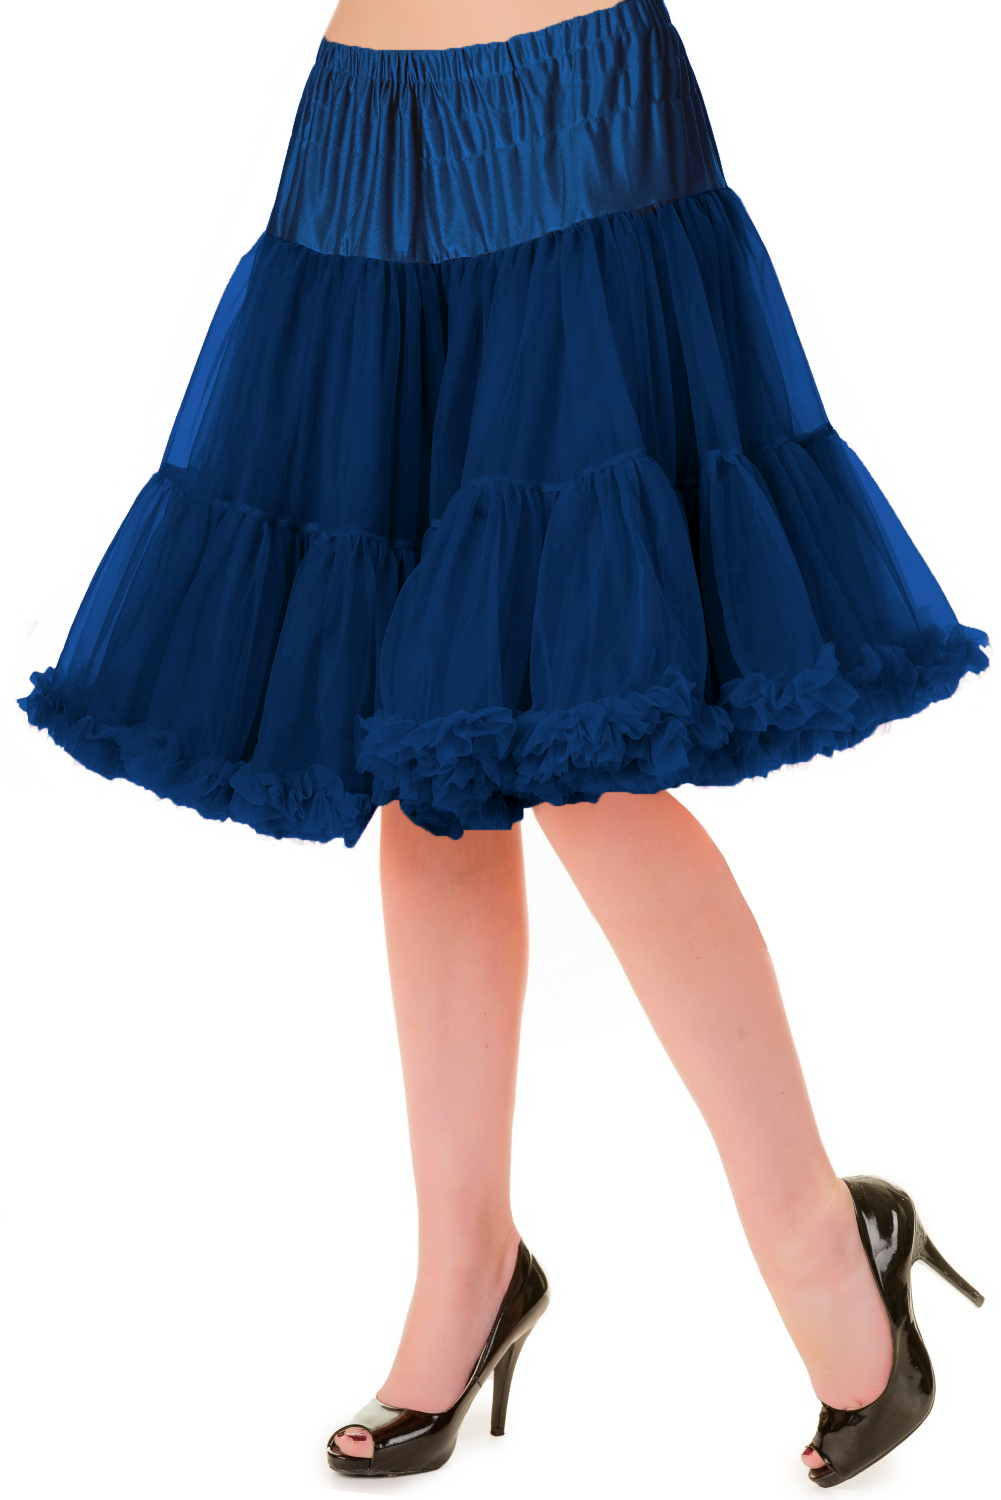 Banned Retro 50s Walkabout Navy Petticoat